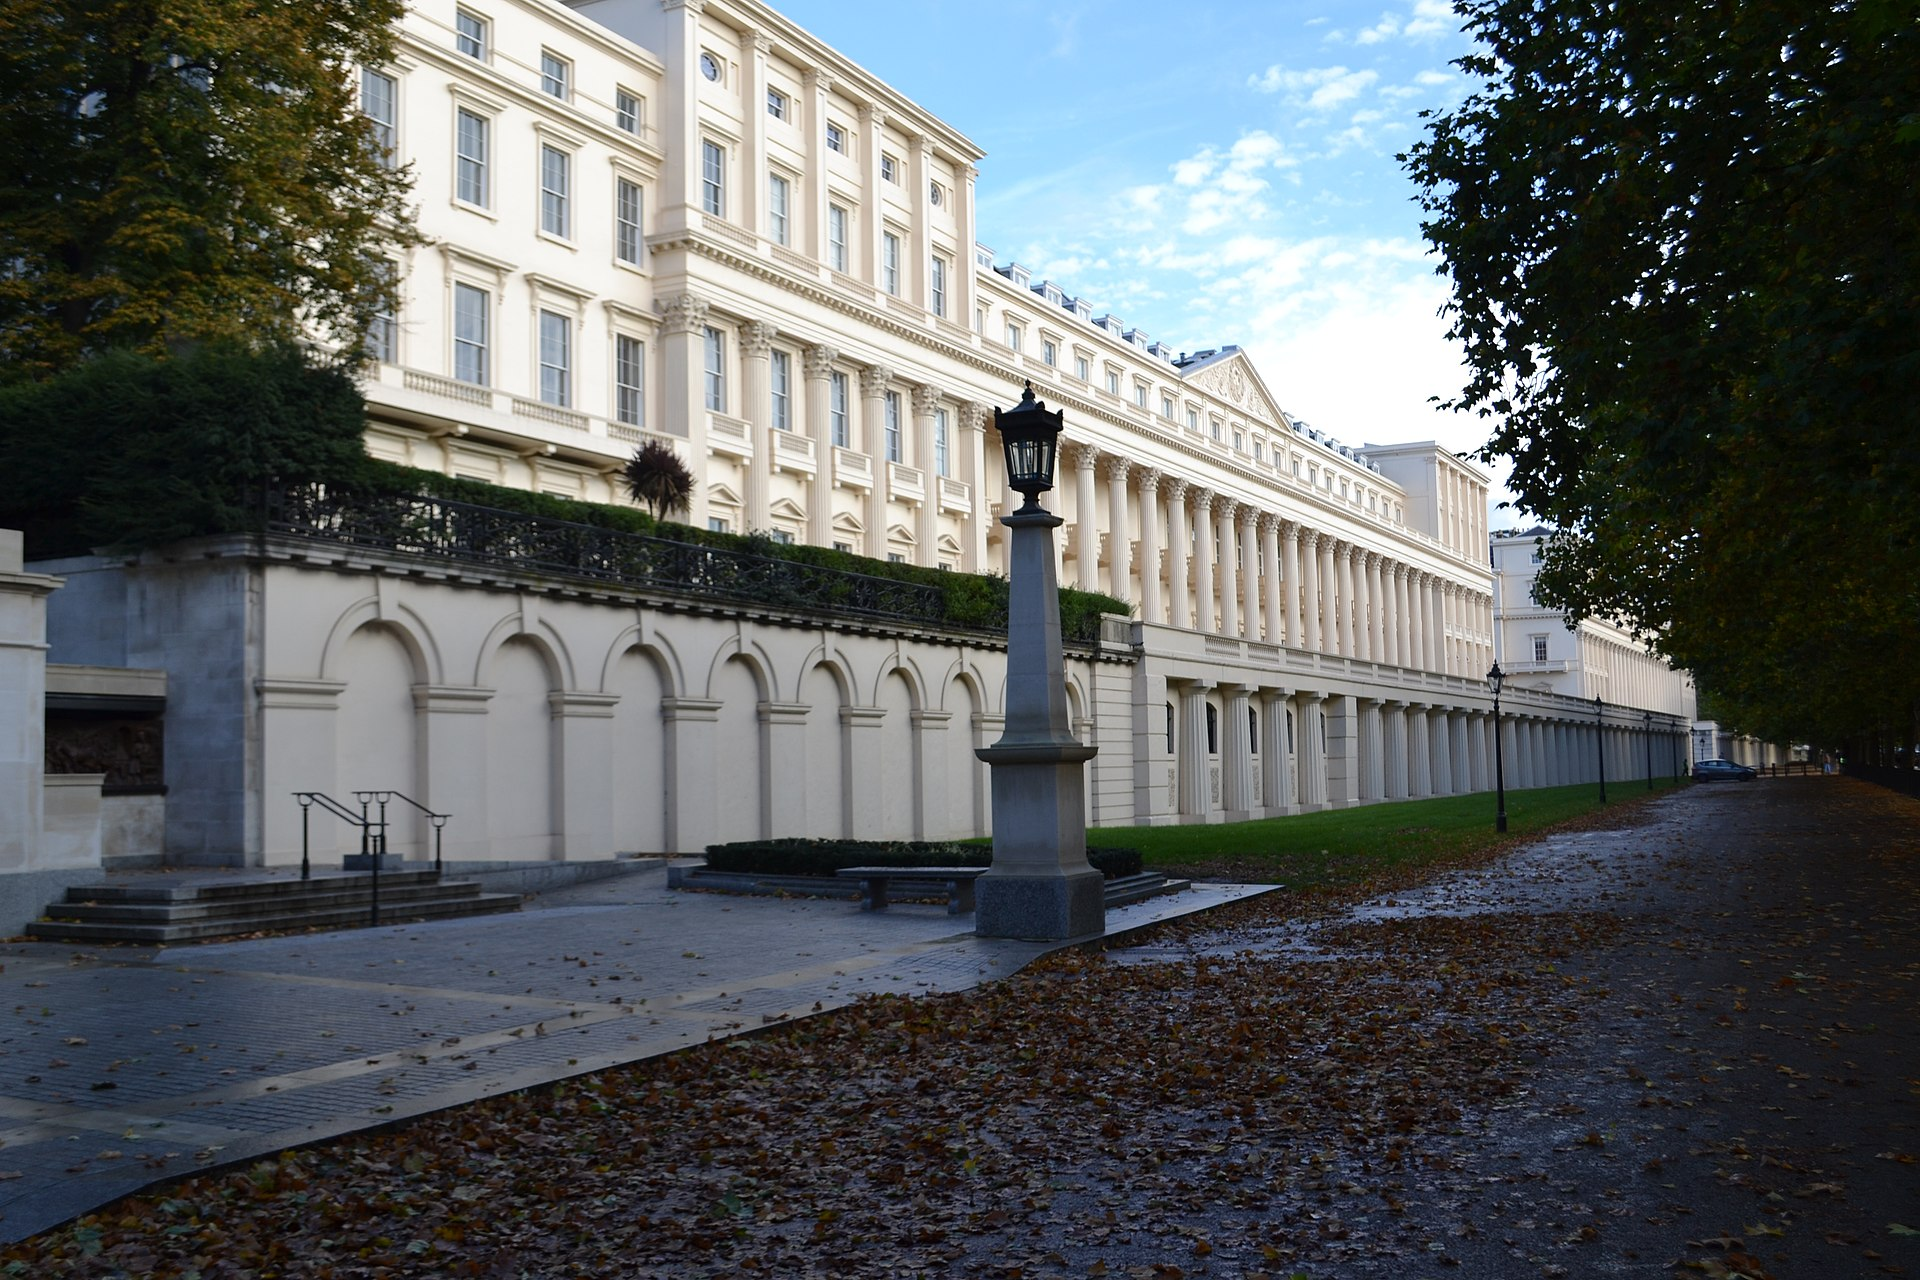 Carlton house terrace wikip dia for Terrace house tv